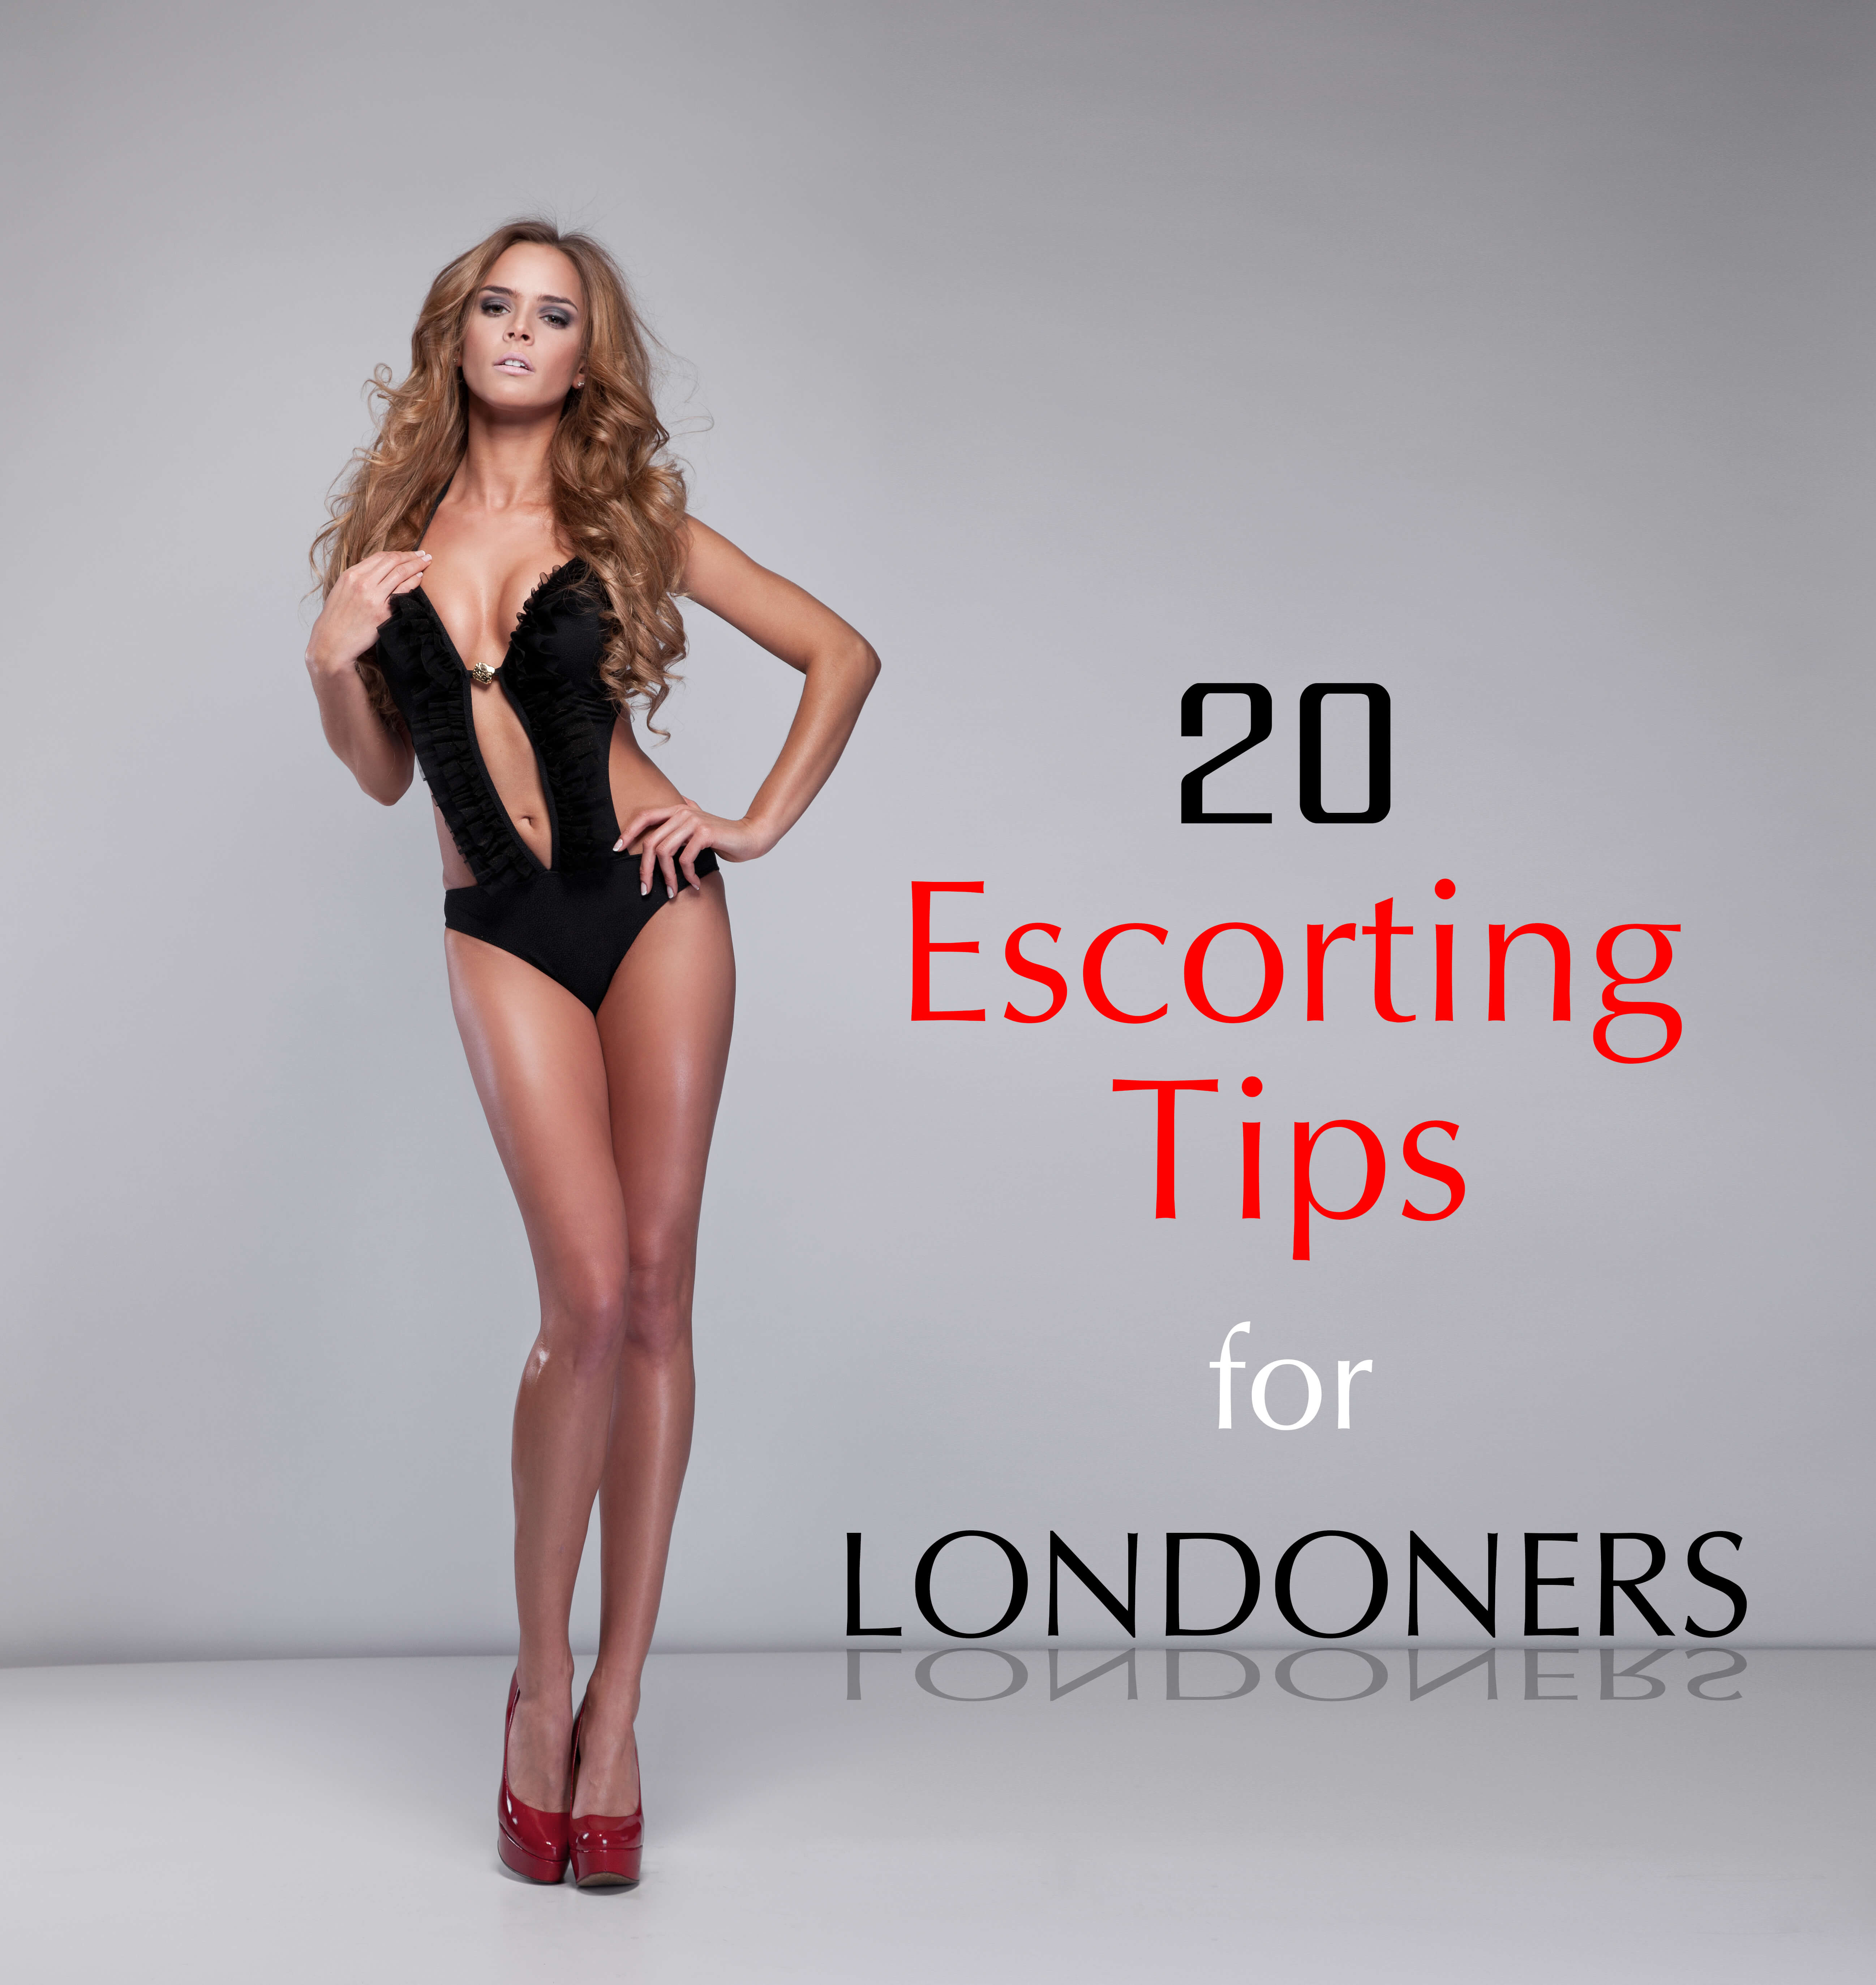 London 20 Escorting Tips: Being Safe & Successful